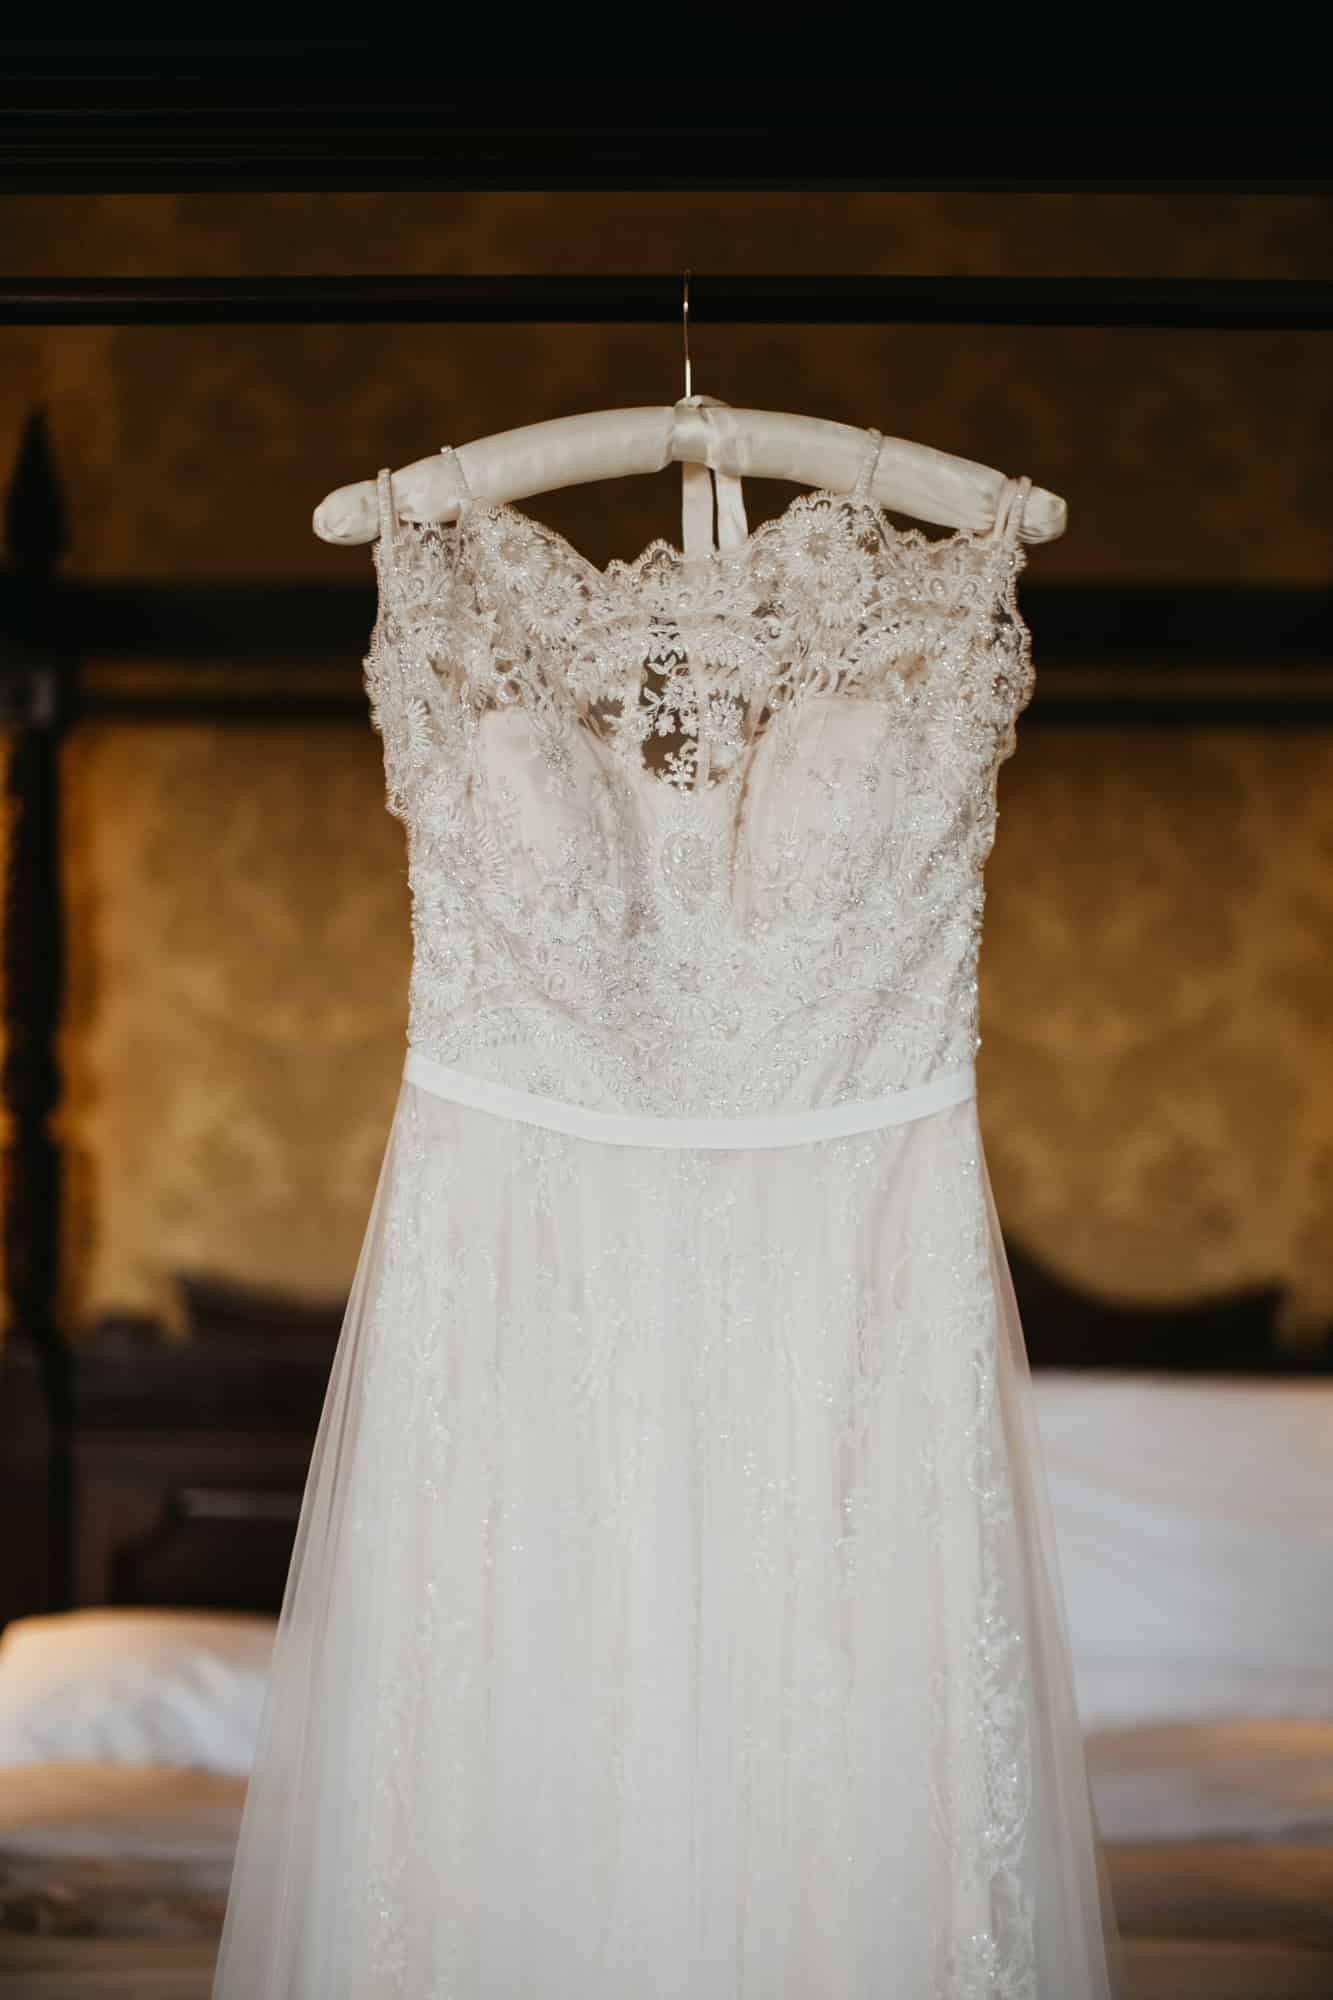 detail shot of the bride's wedding dress